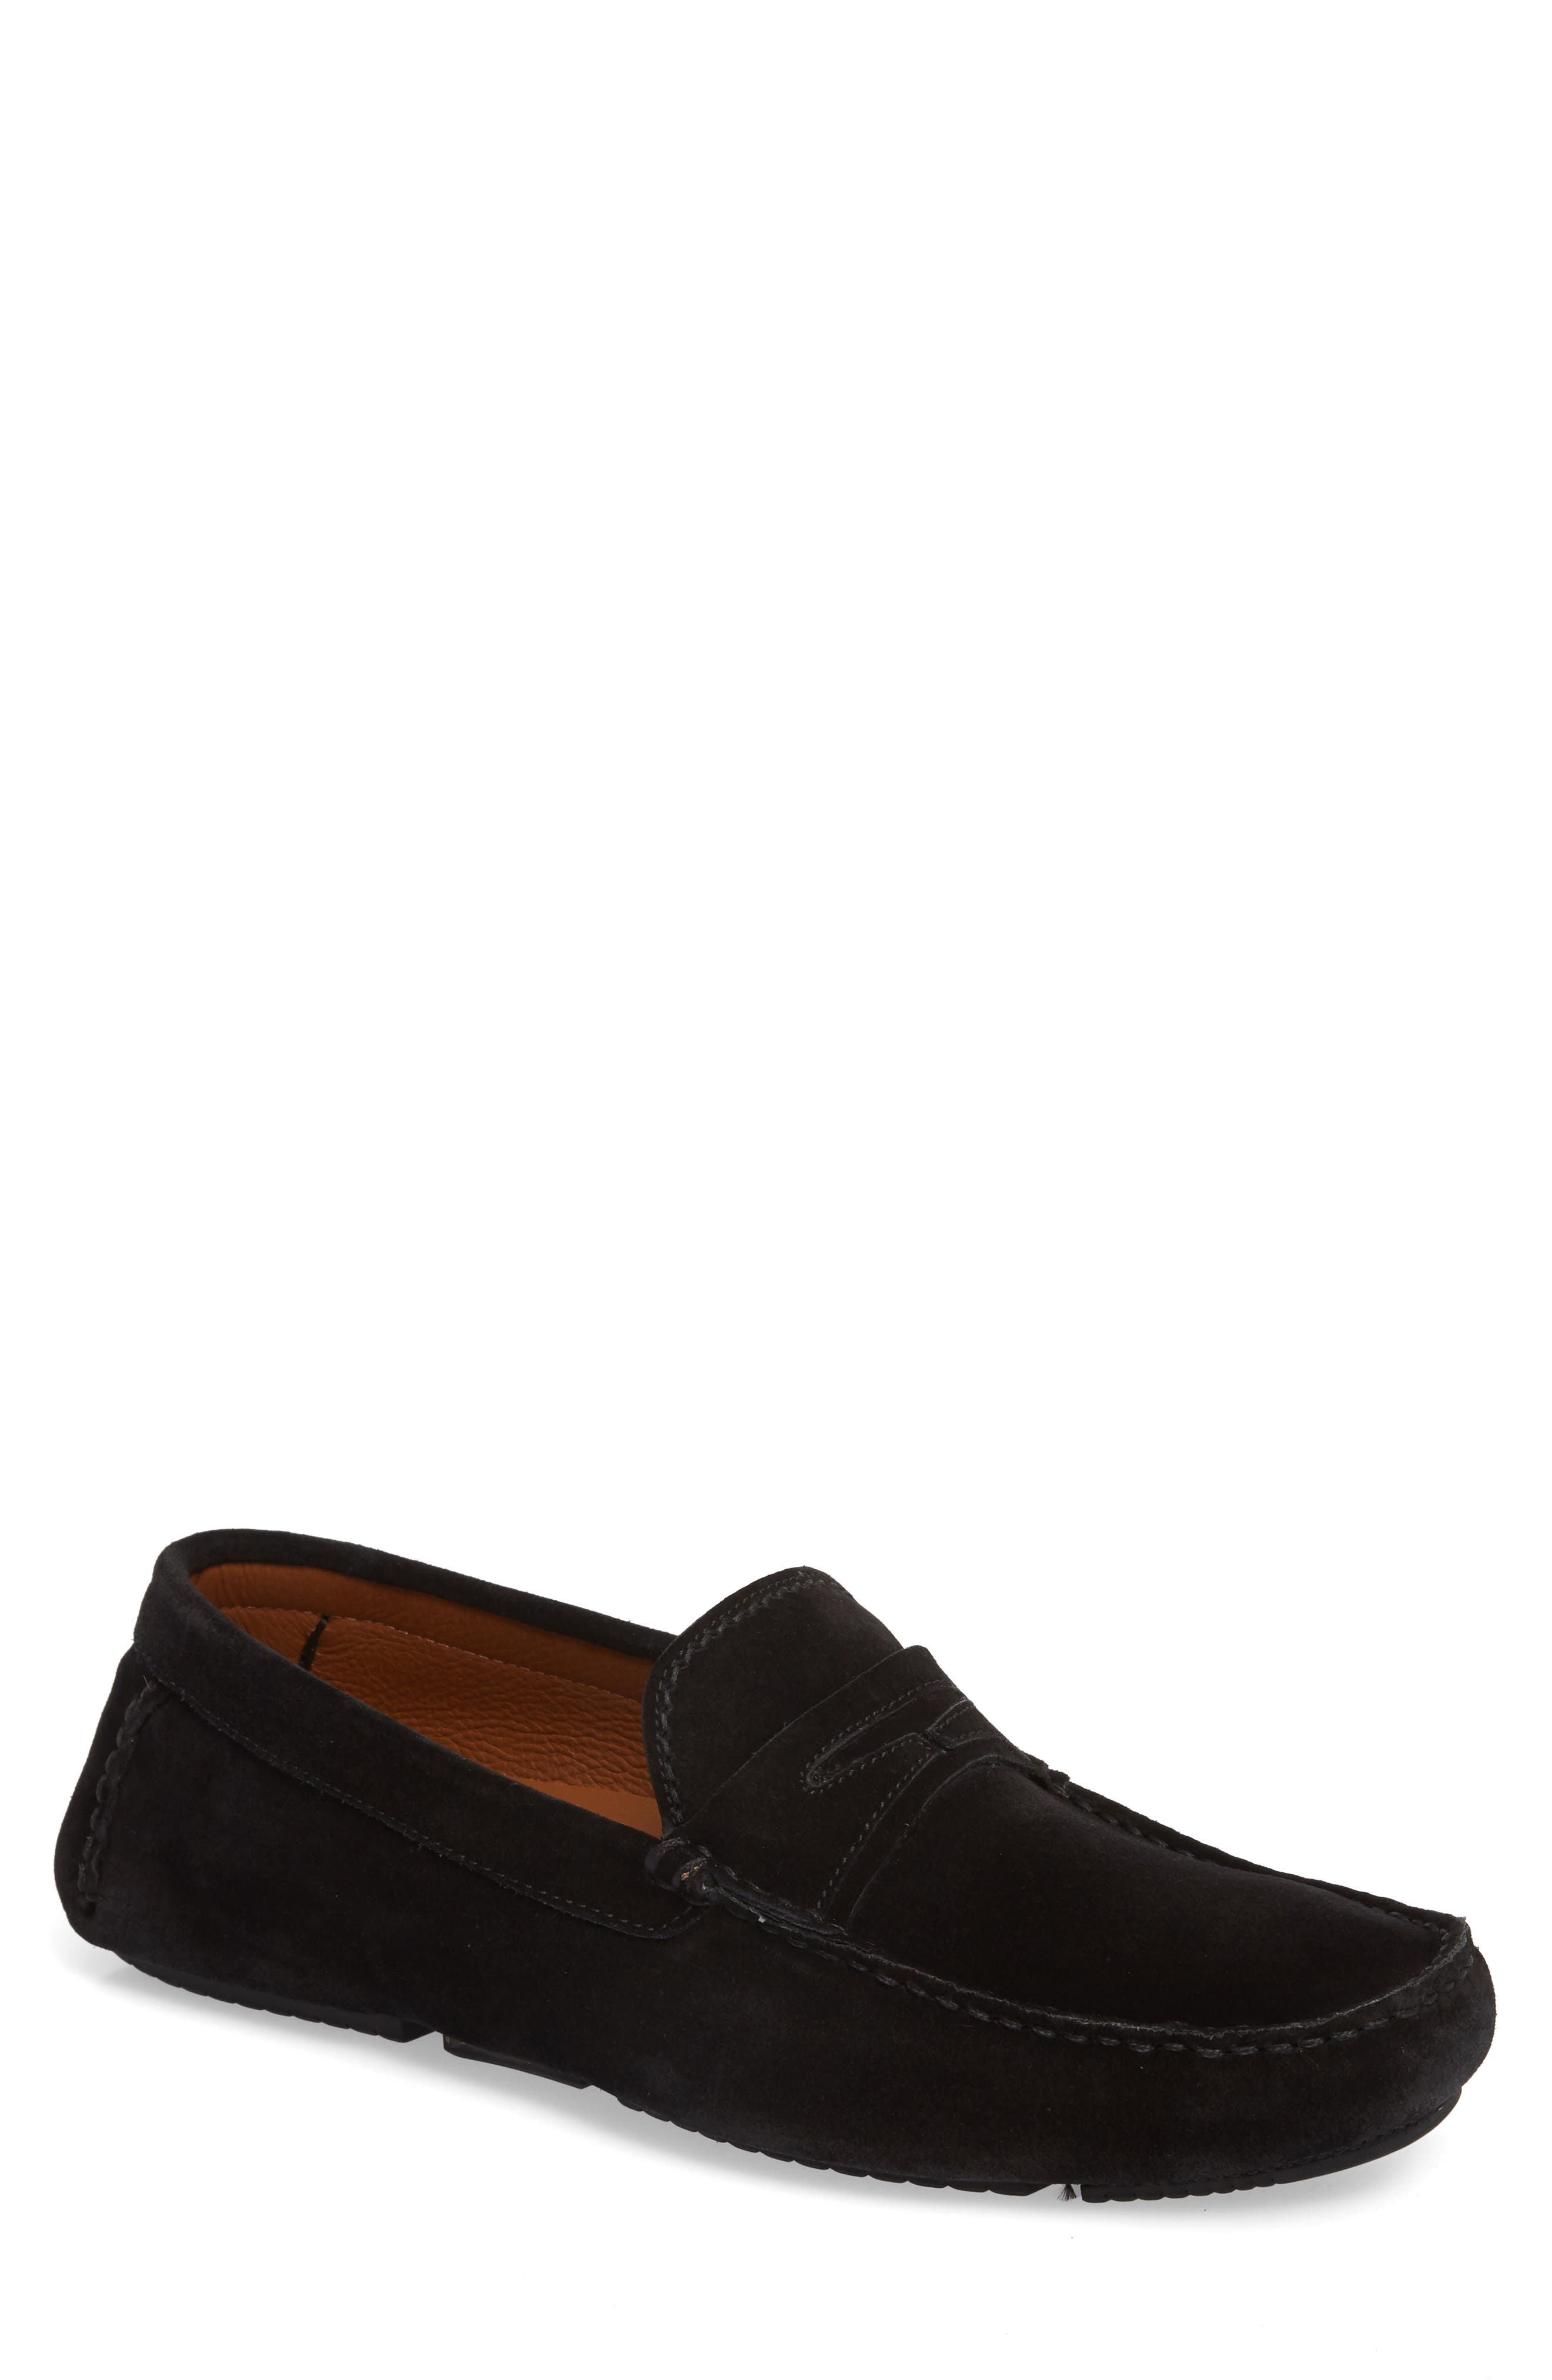 Brandon Weatherproof Driving Loafer,                             Main thumbnail 1, color,                             BLACK SUEDE